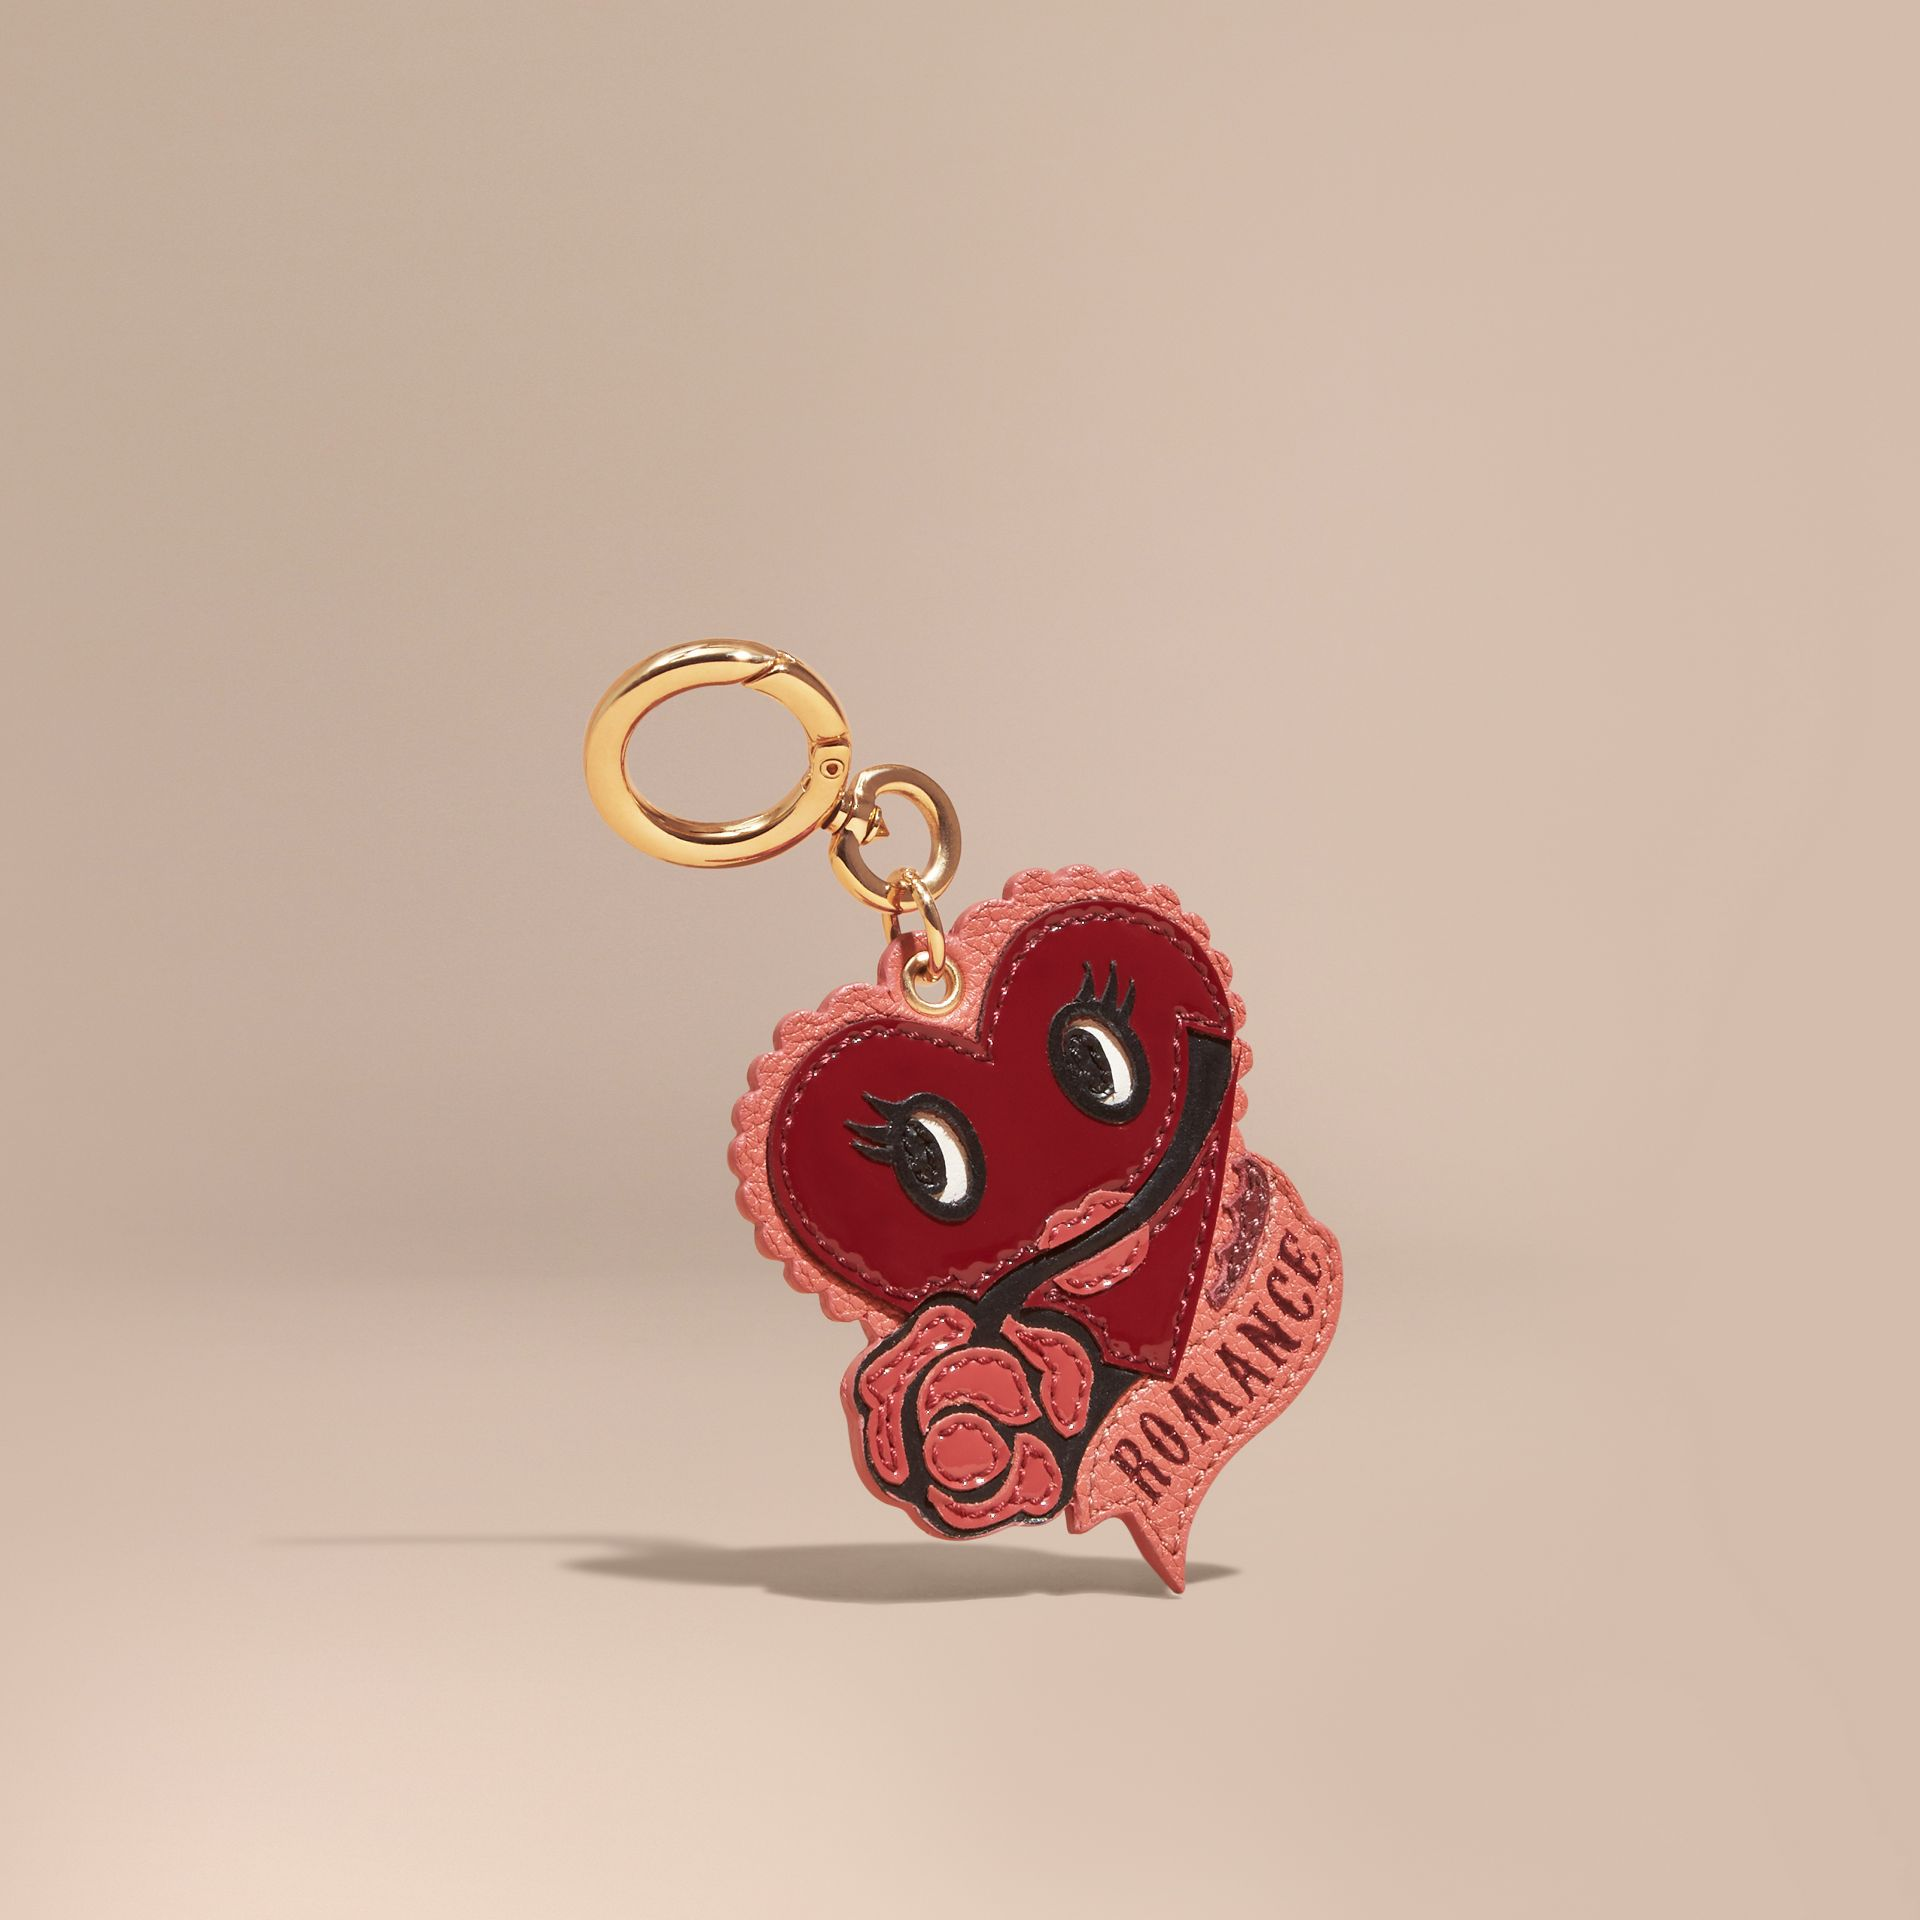 Leather Romance Charm - gallery image 1